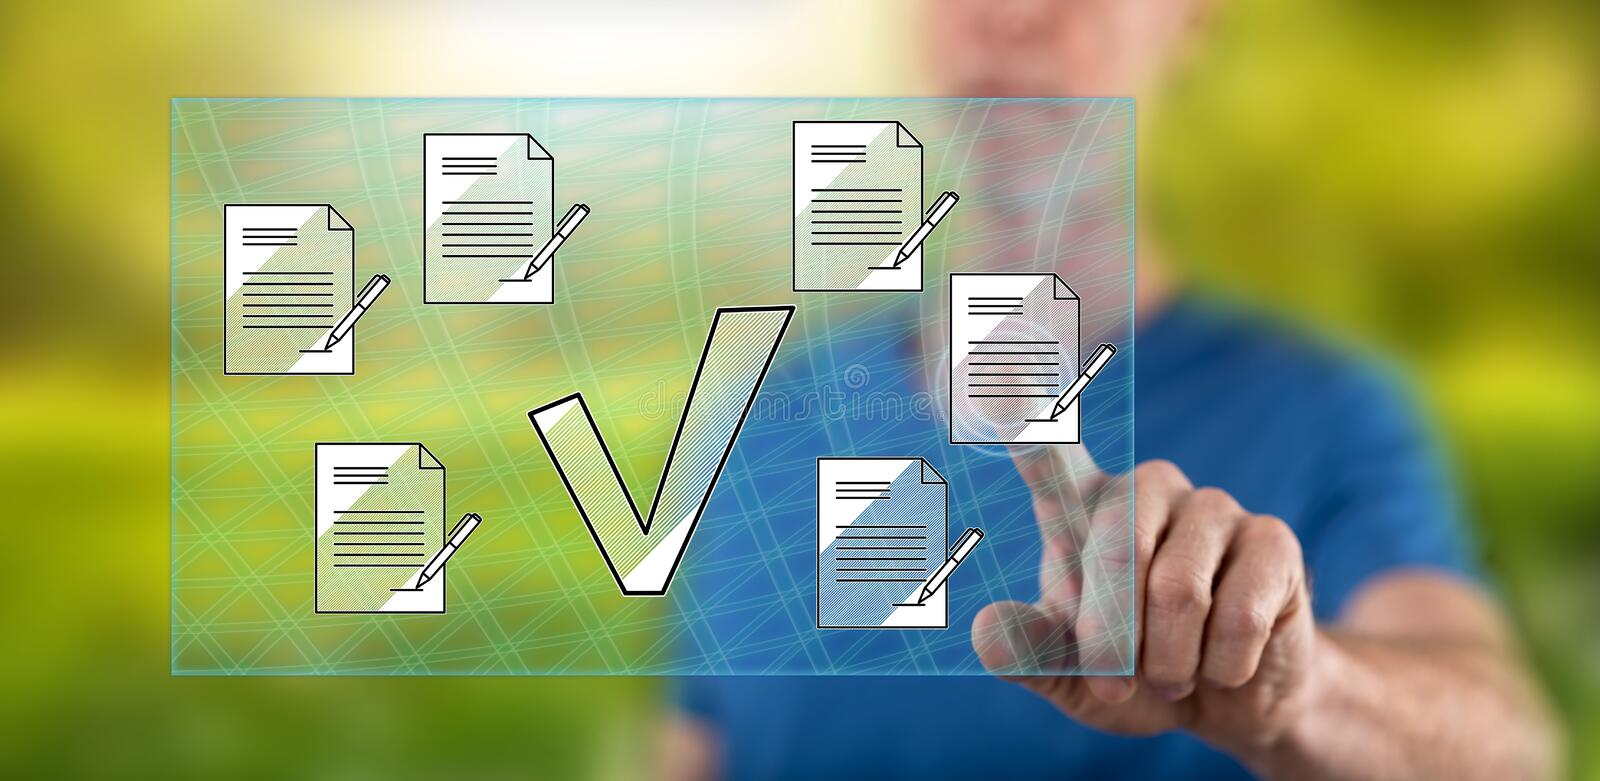 Man touching a document validation concept stock images